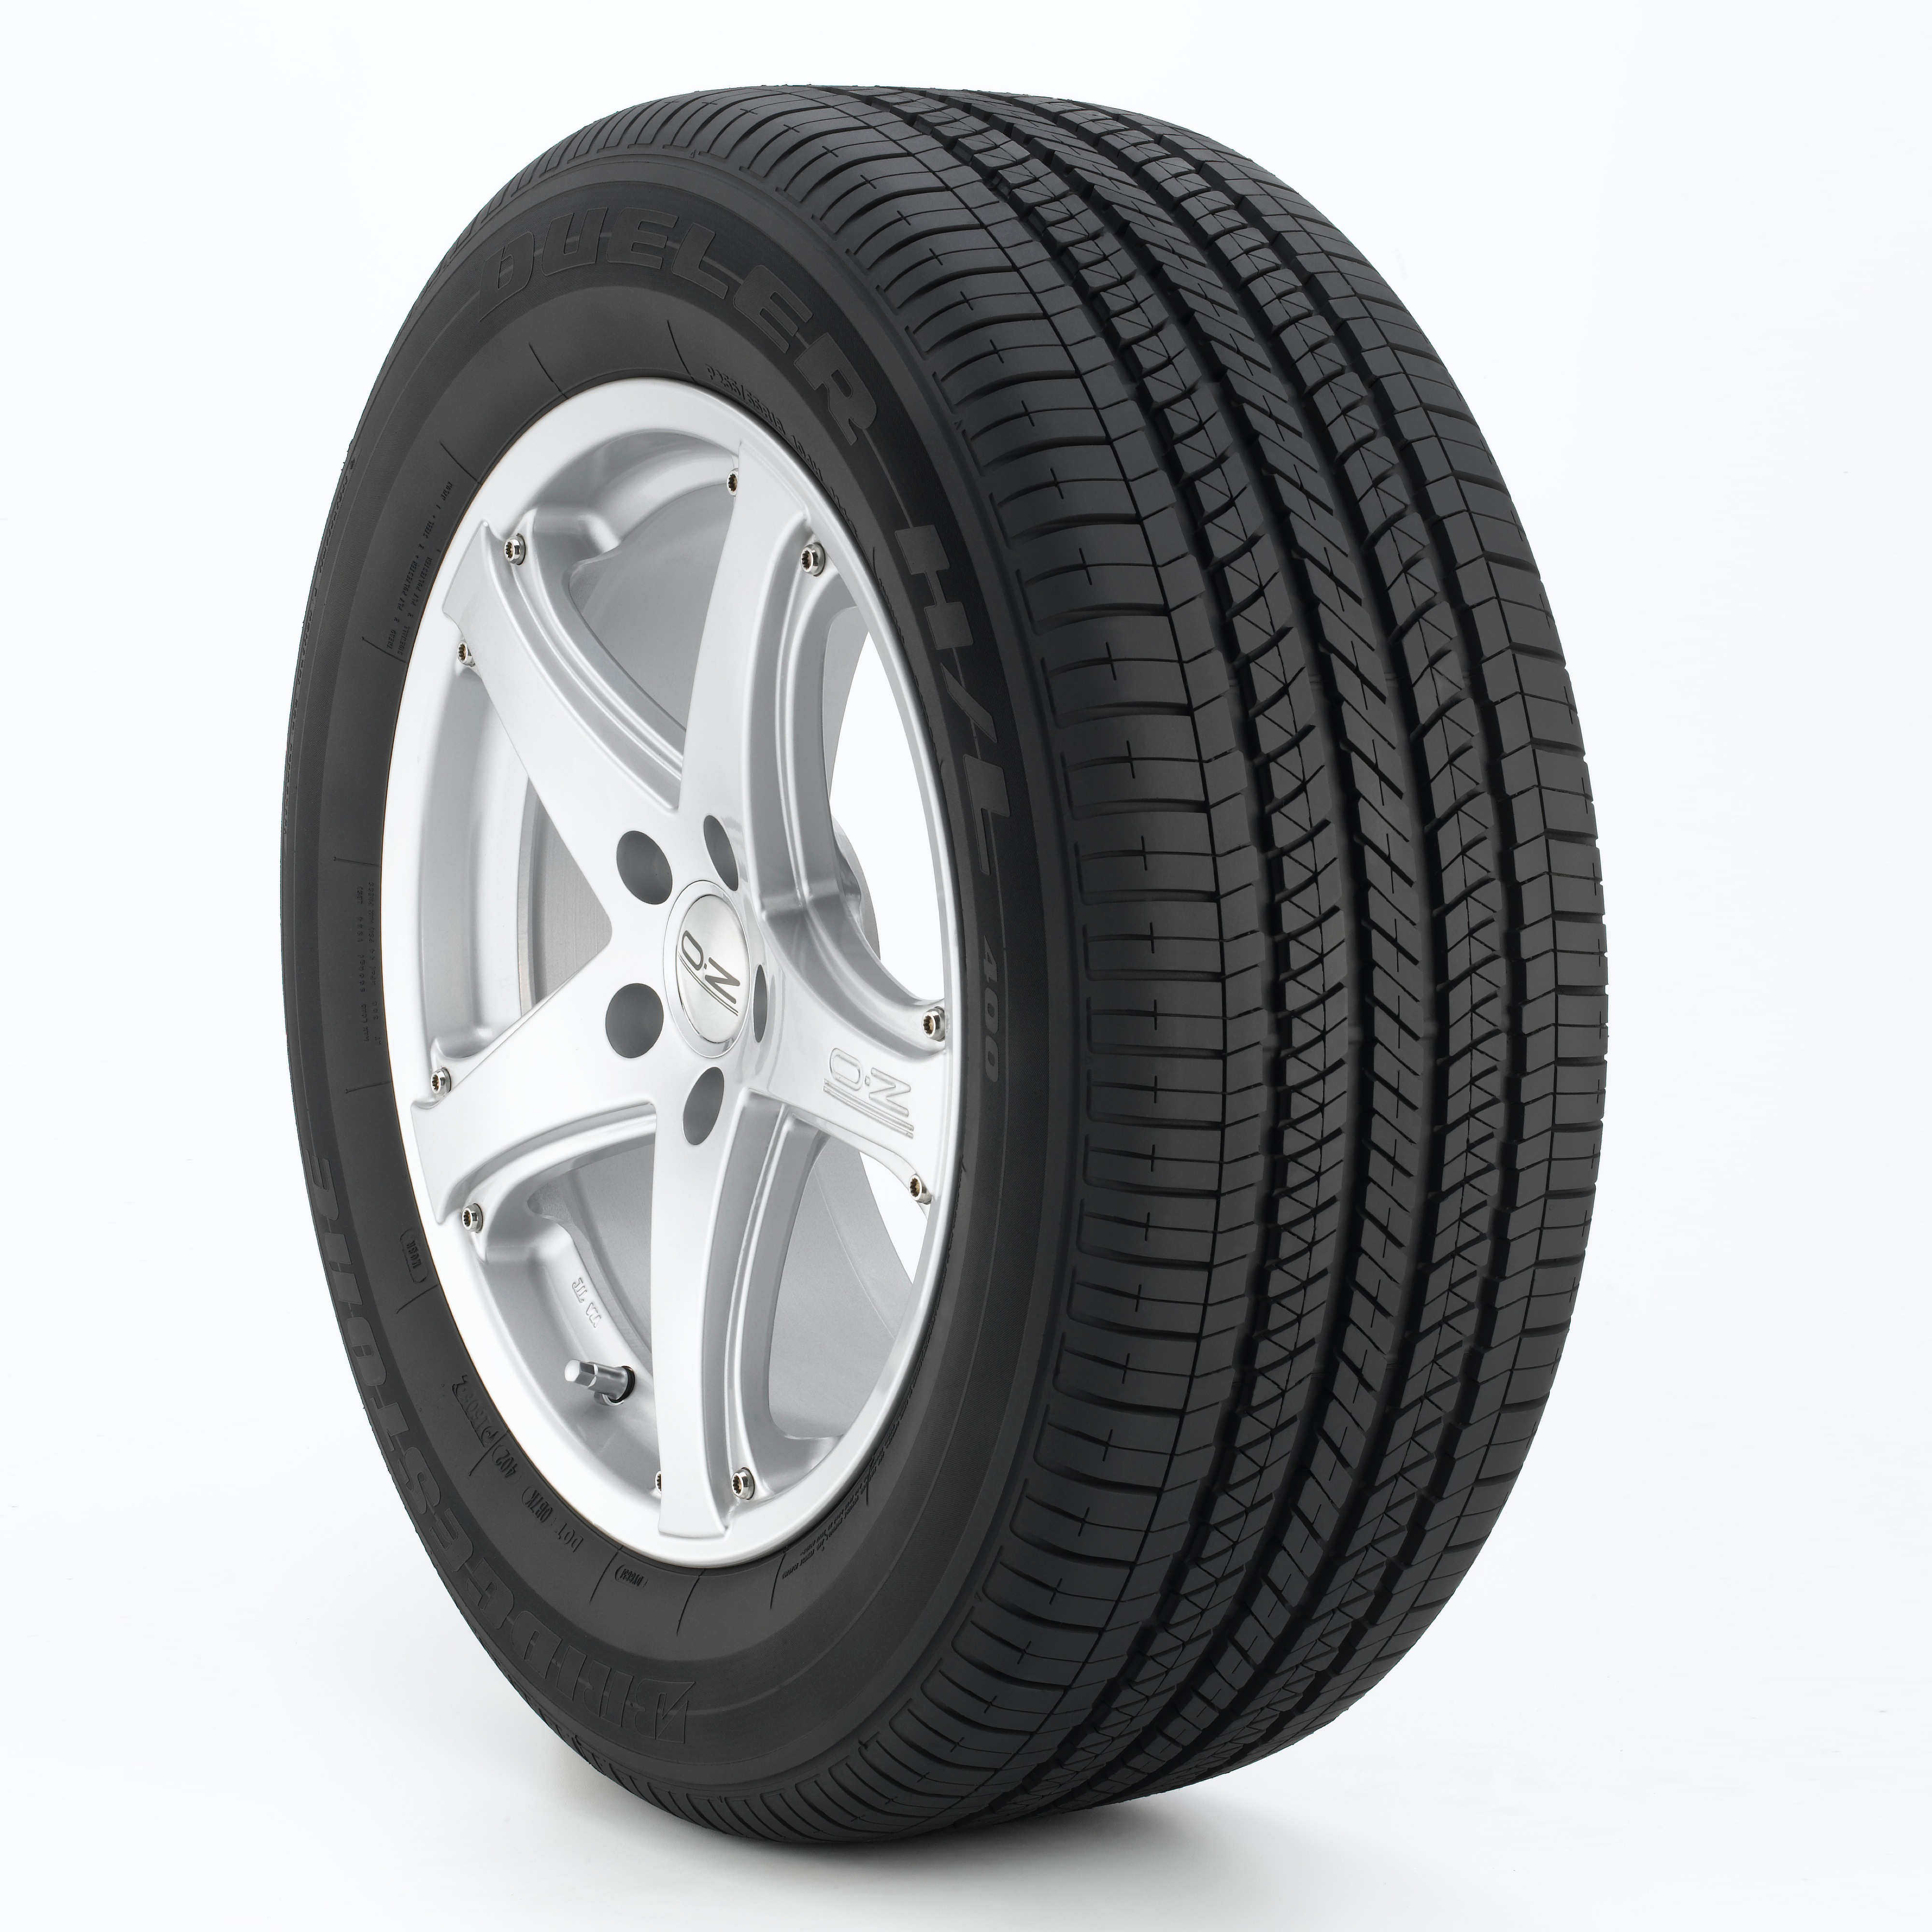 Dueler H/L 400 Run-Flat Technology Tyre